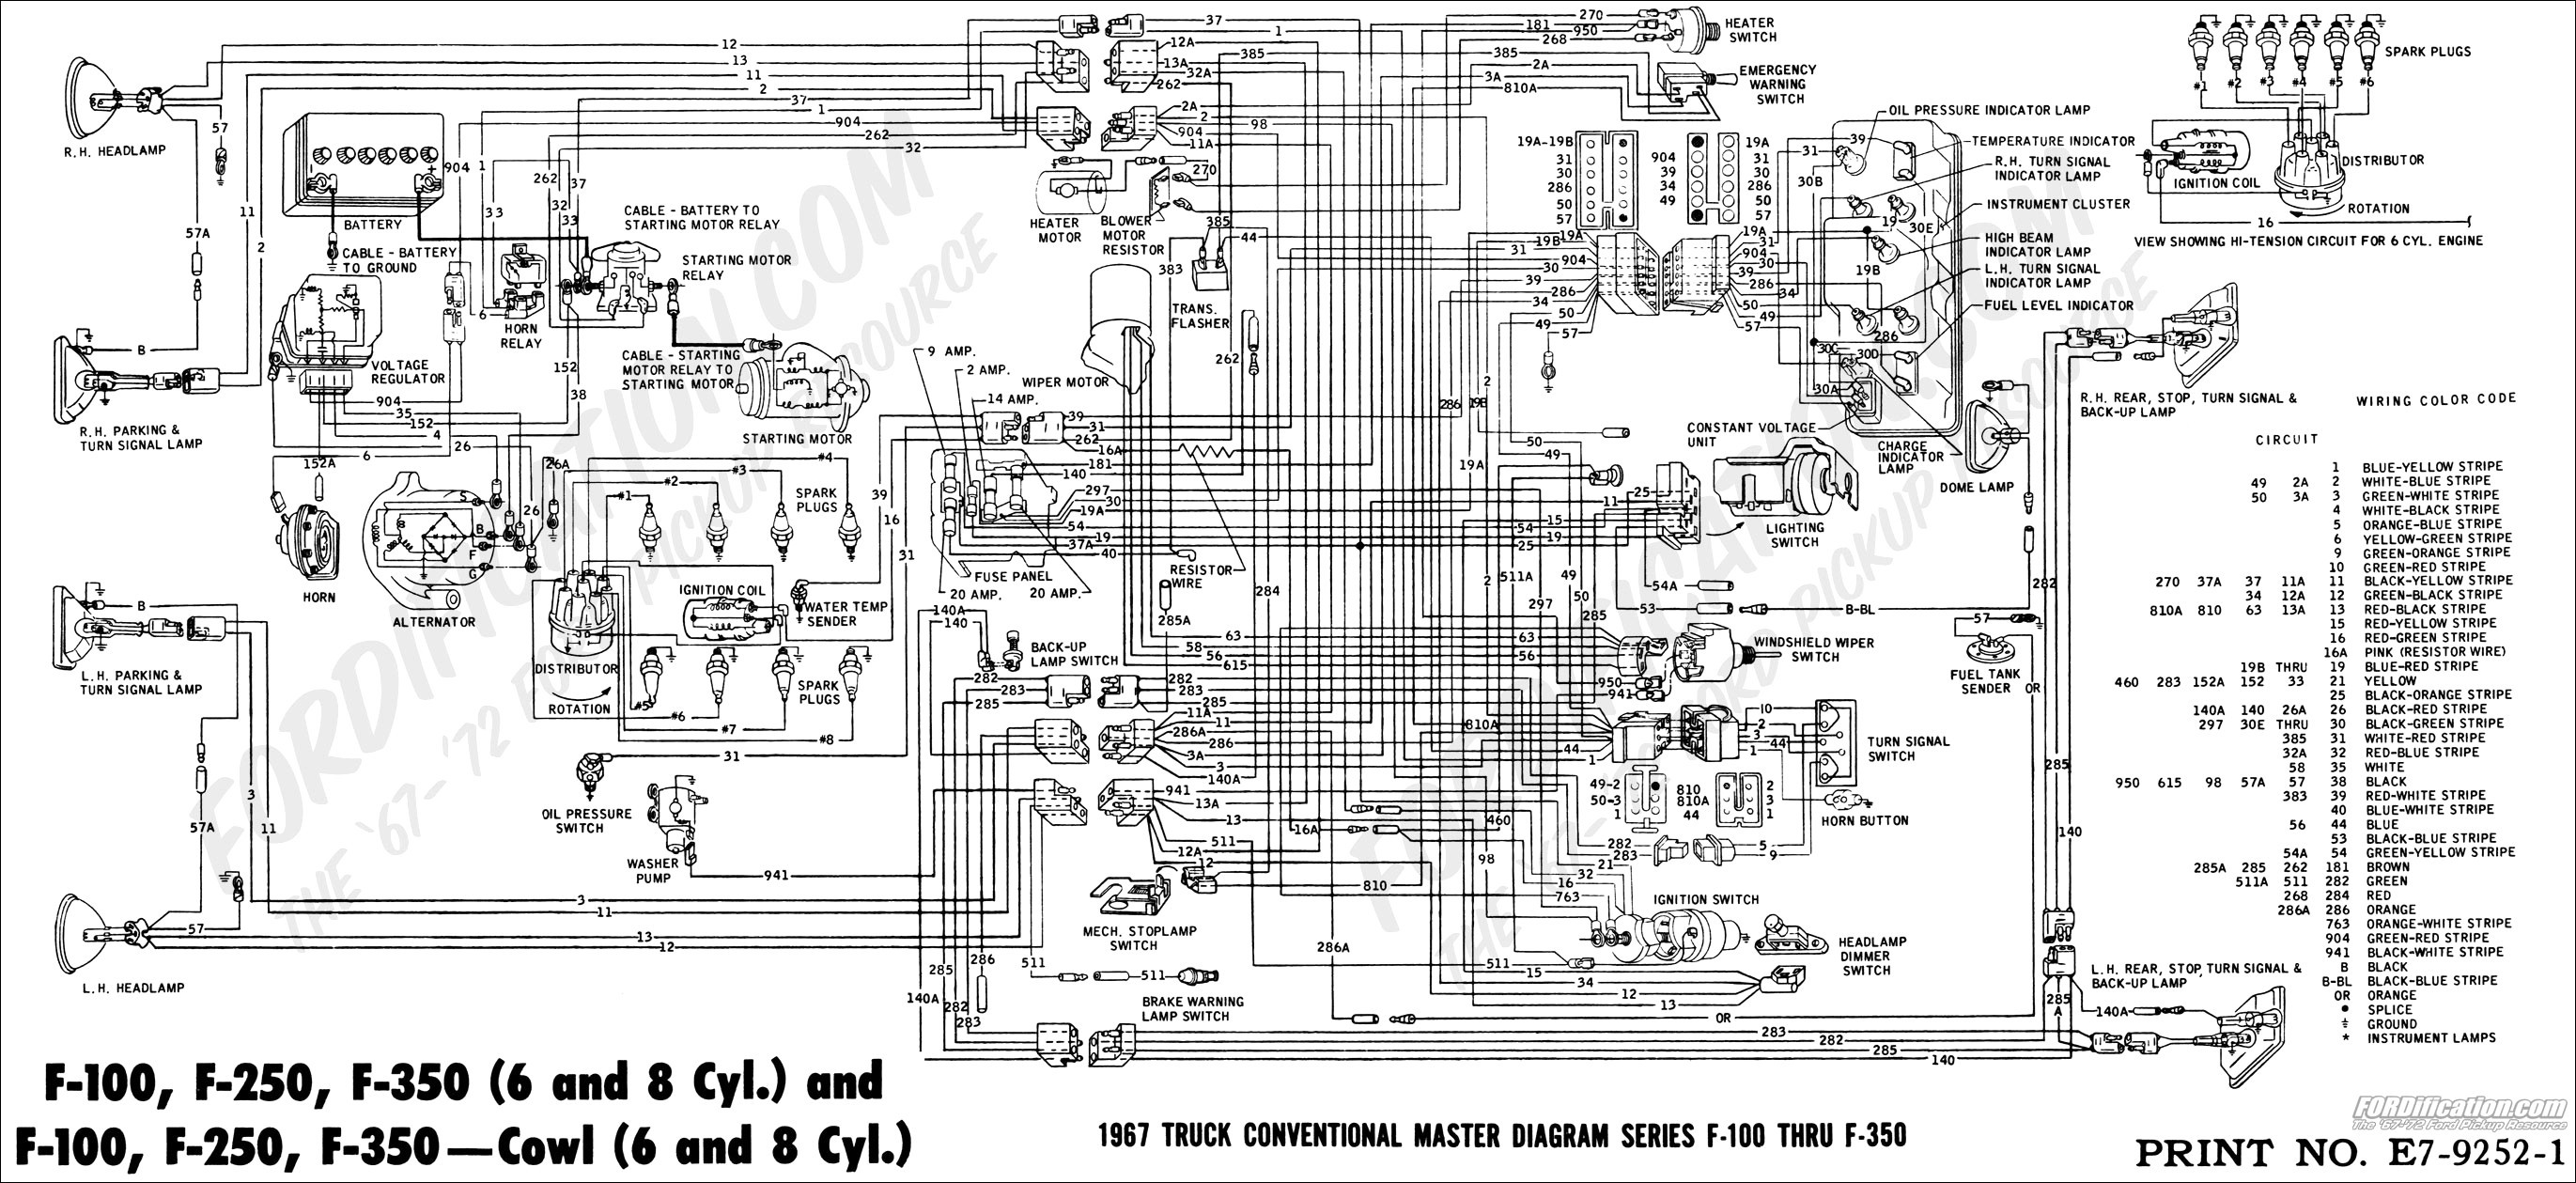 ford fairlane wiring diagram as well ford f 150 wiring diagram rh inspeere co 1993 F150 Wiring Diagram 1992 F150 Wiring Diagram